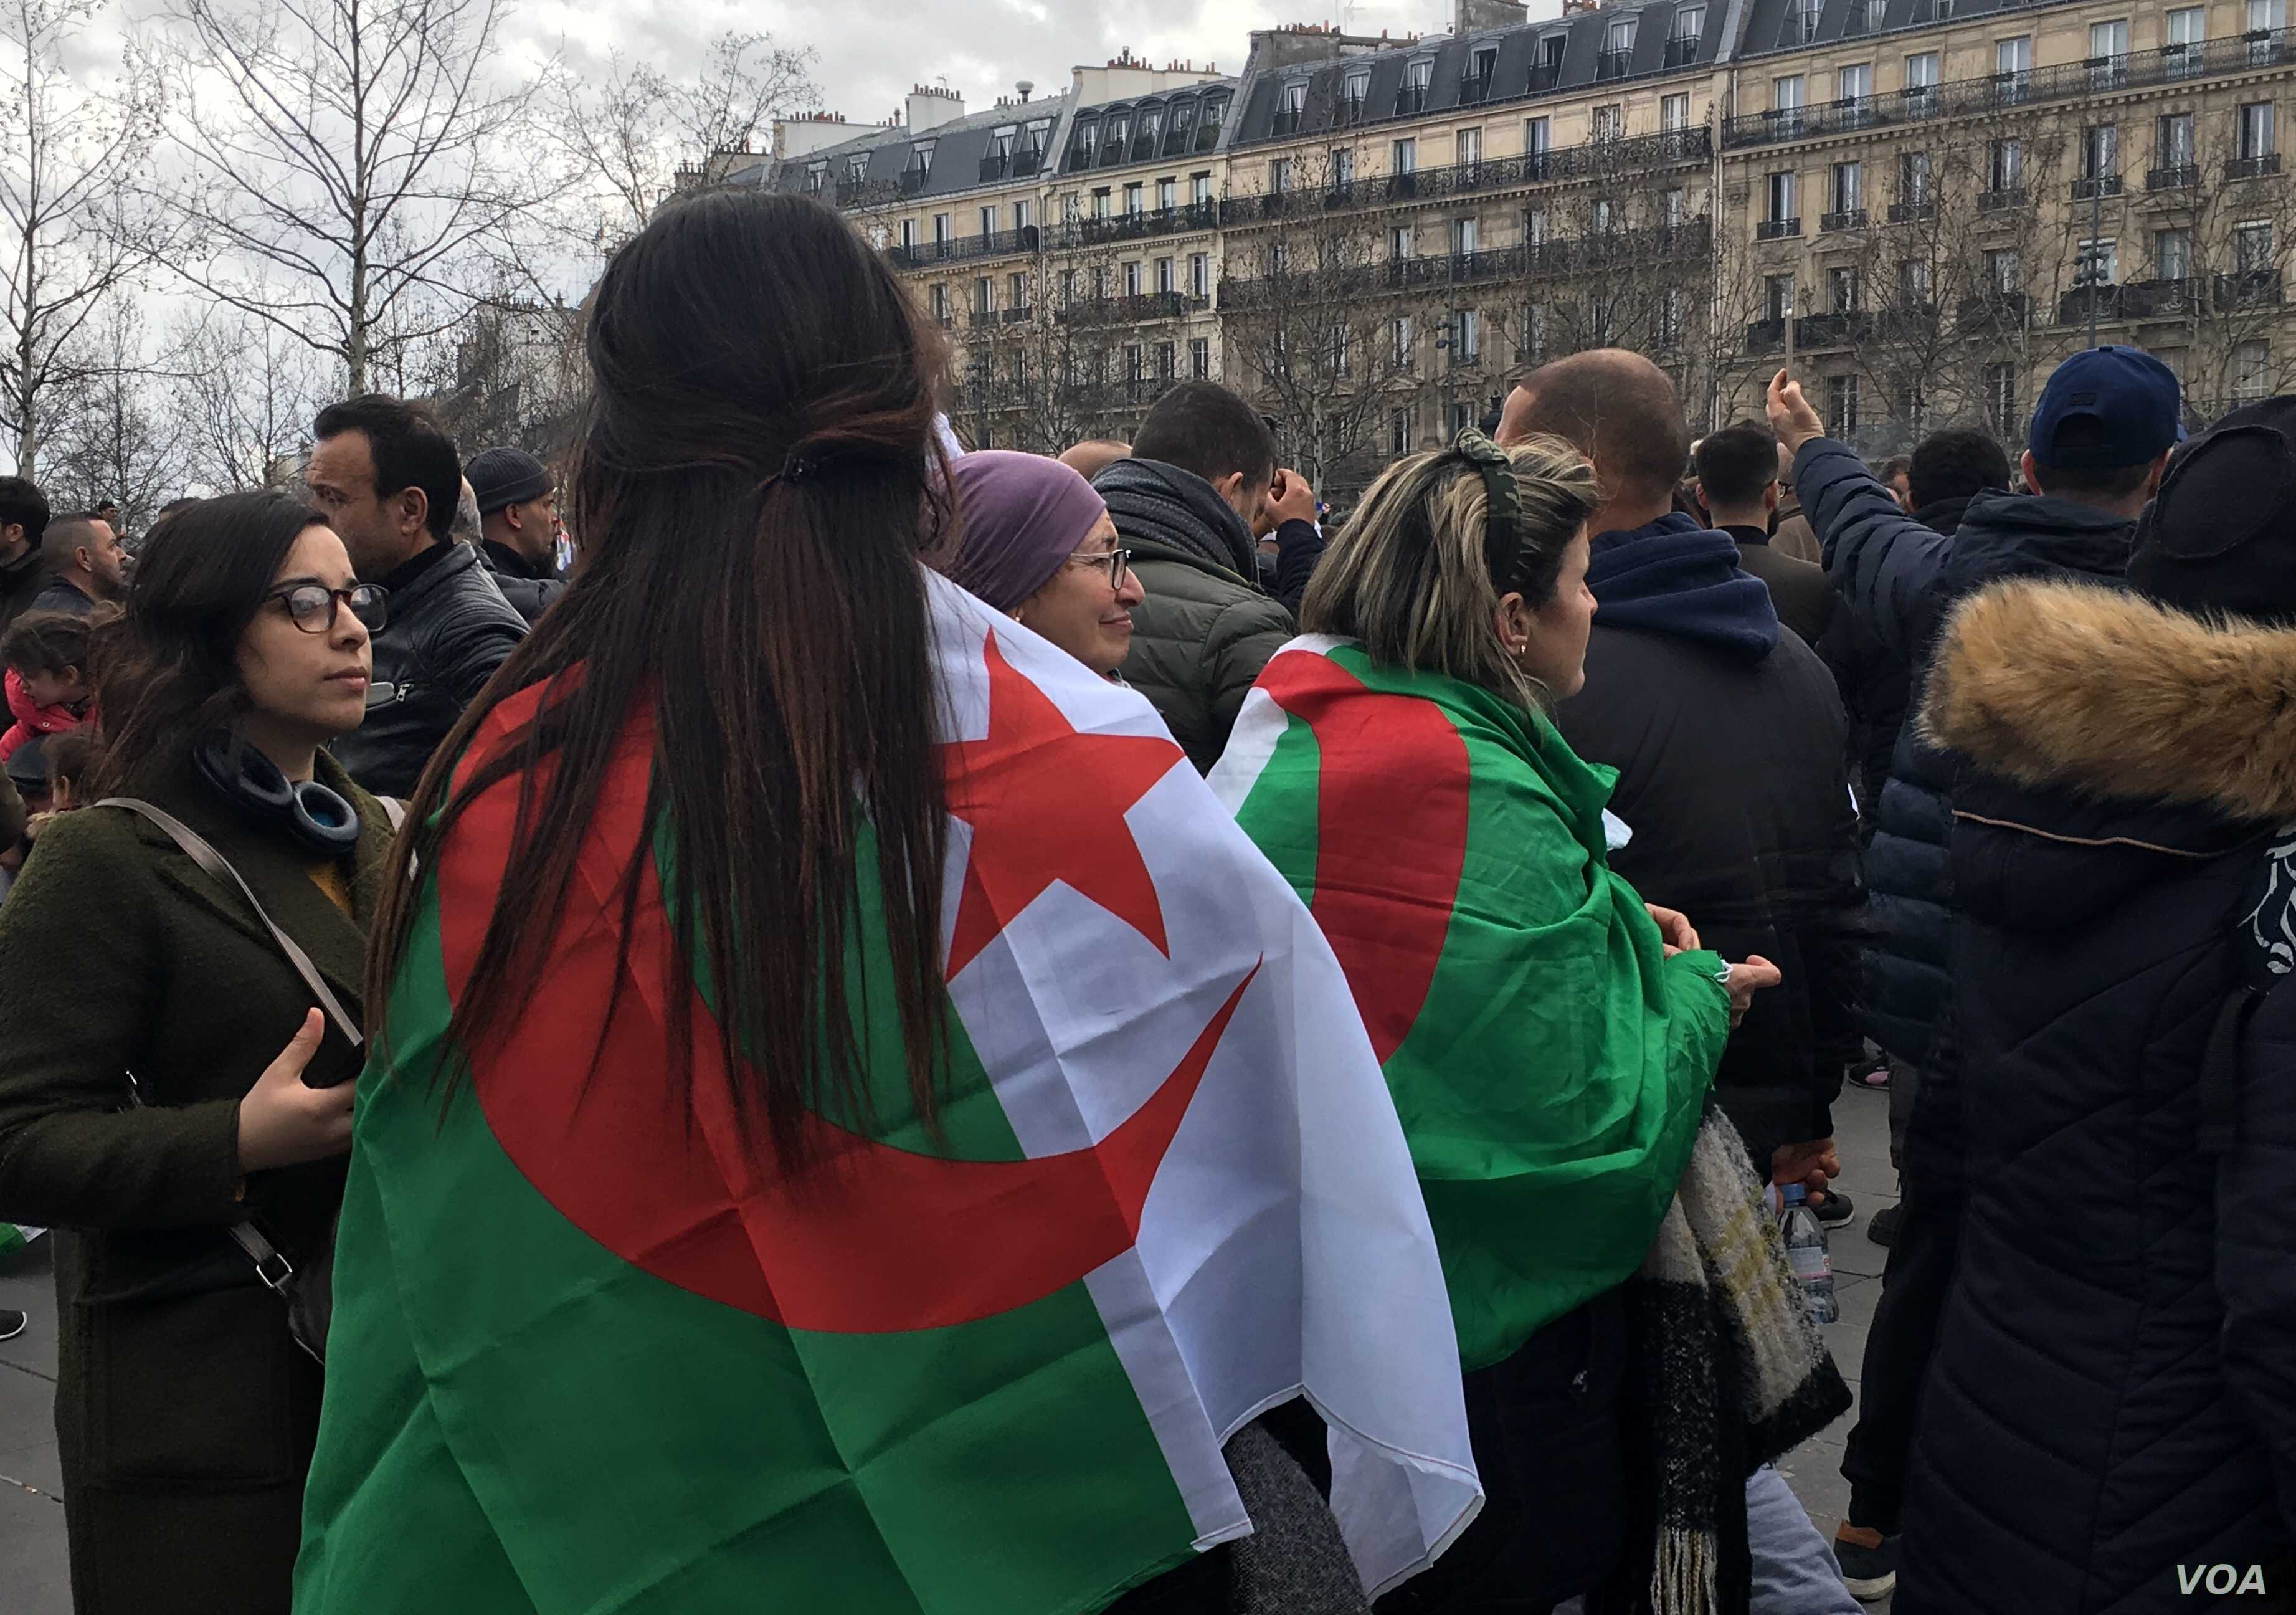 Women at a Paris protest are seen with the Algerian flag draped over their shoulders.